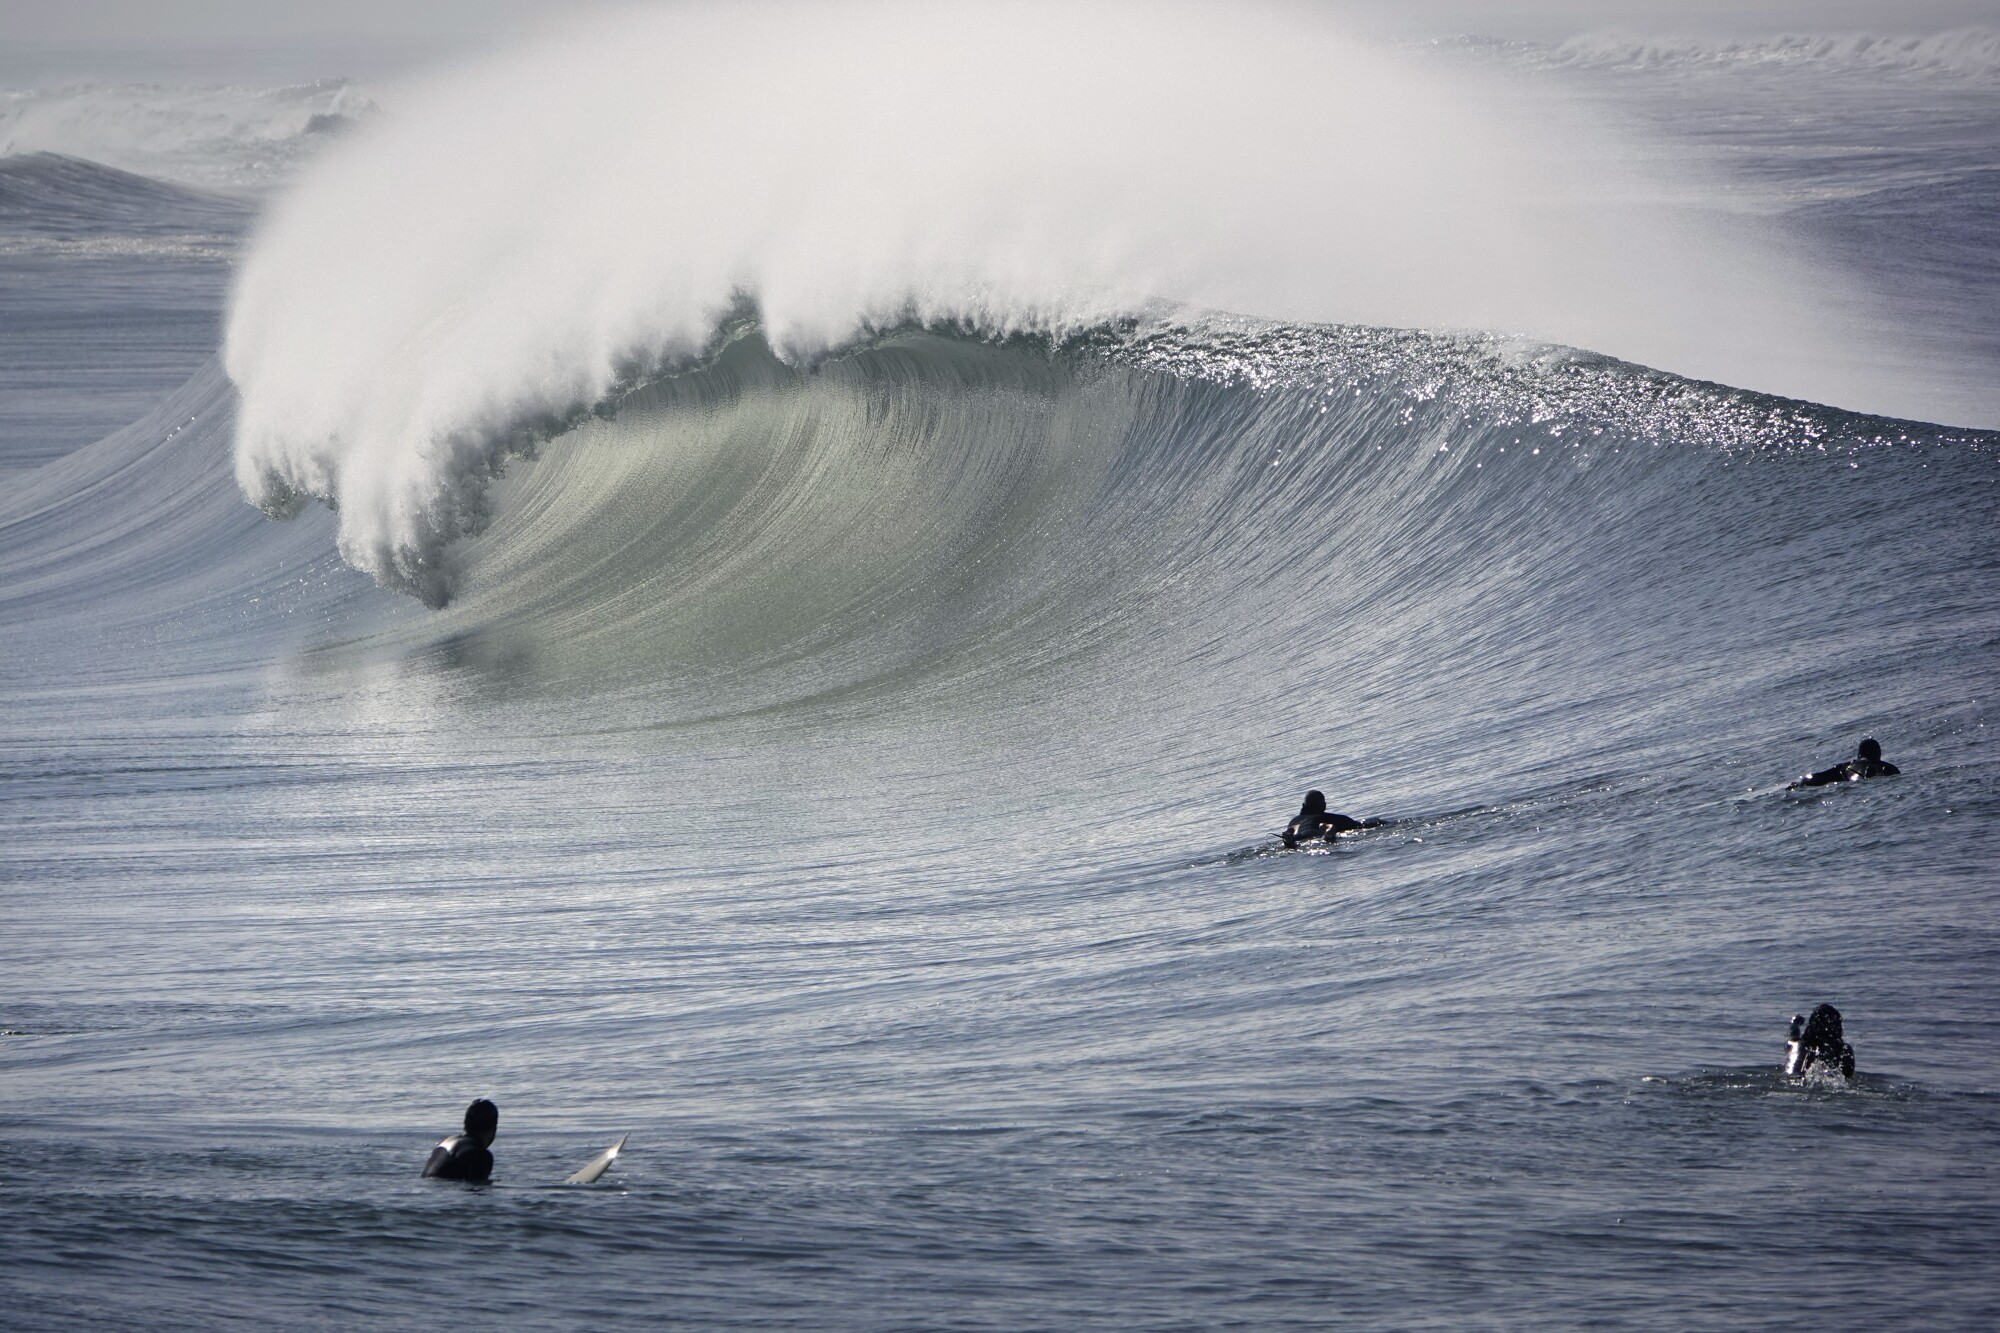 Surfers watch as a large wave breaks in Imperial Beach on Sunday, Jan. 3, 2021.